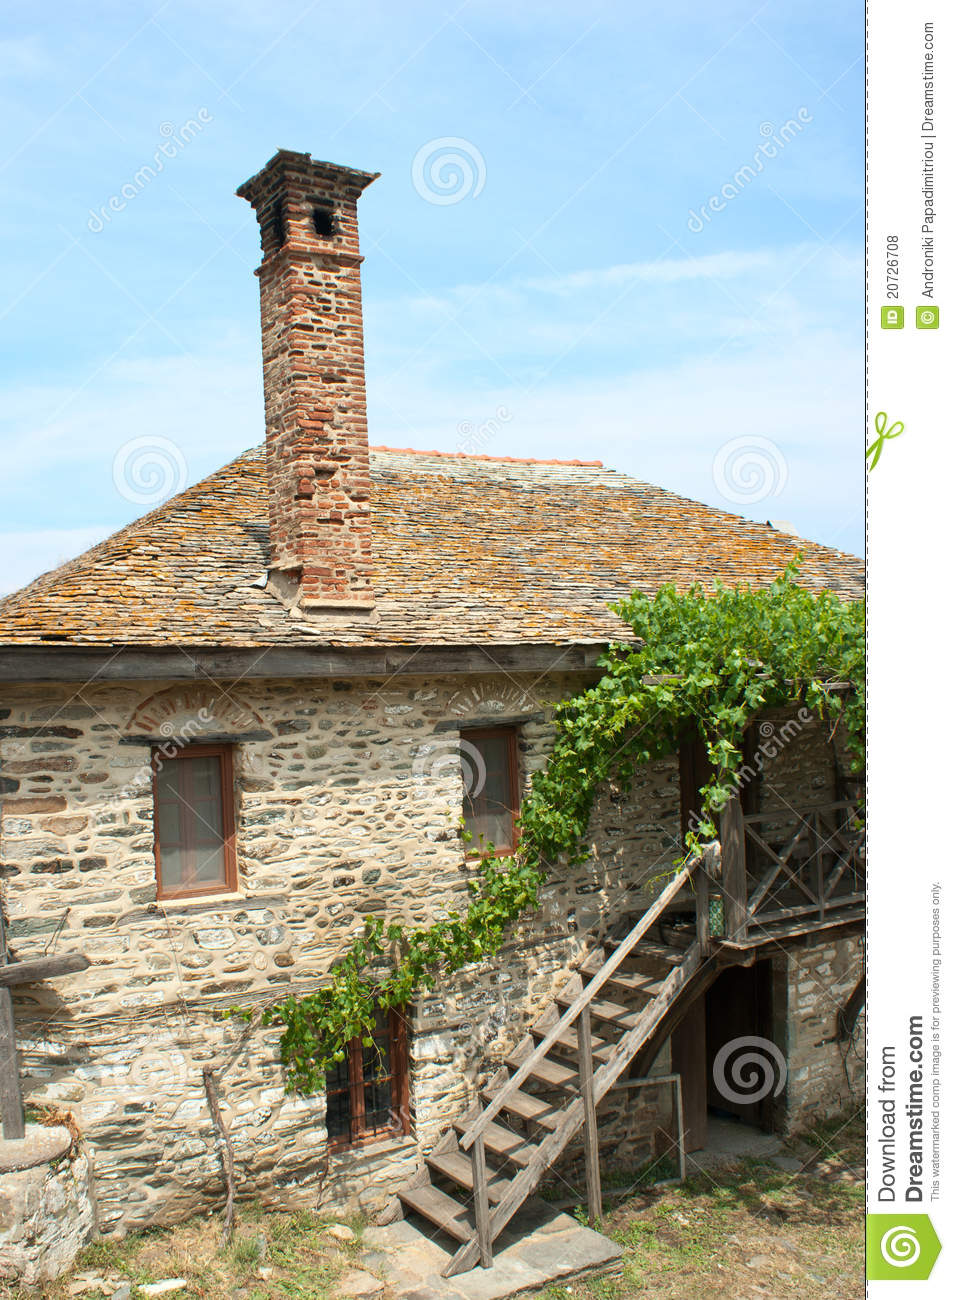 Vieille maison en pierre photo stock image du ferme for Maison pierre